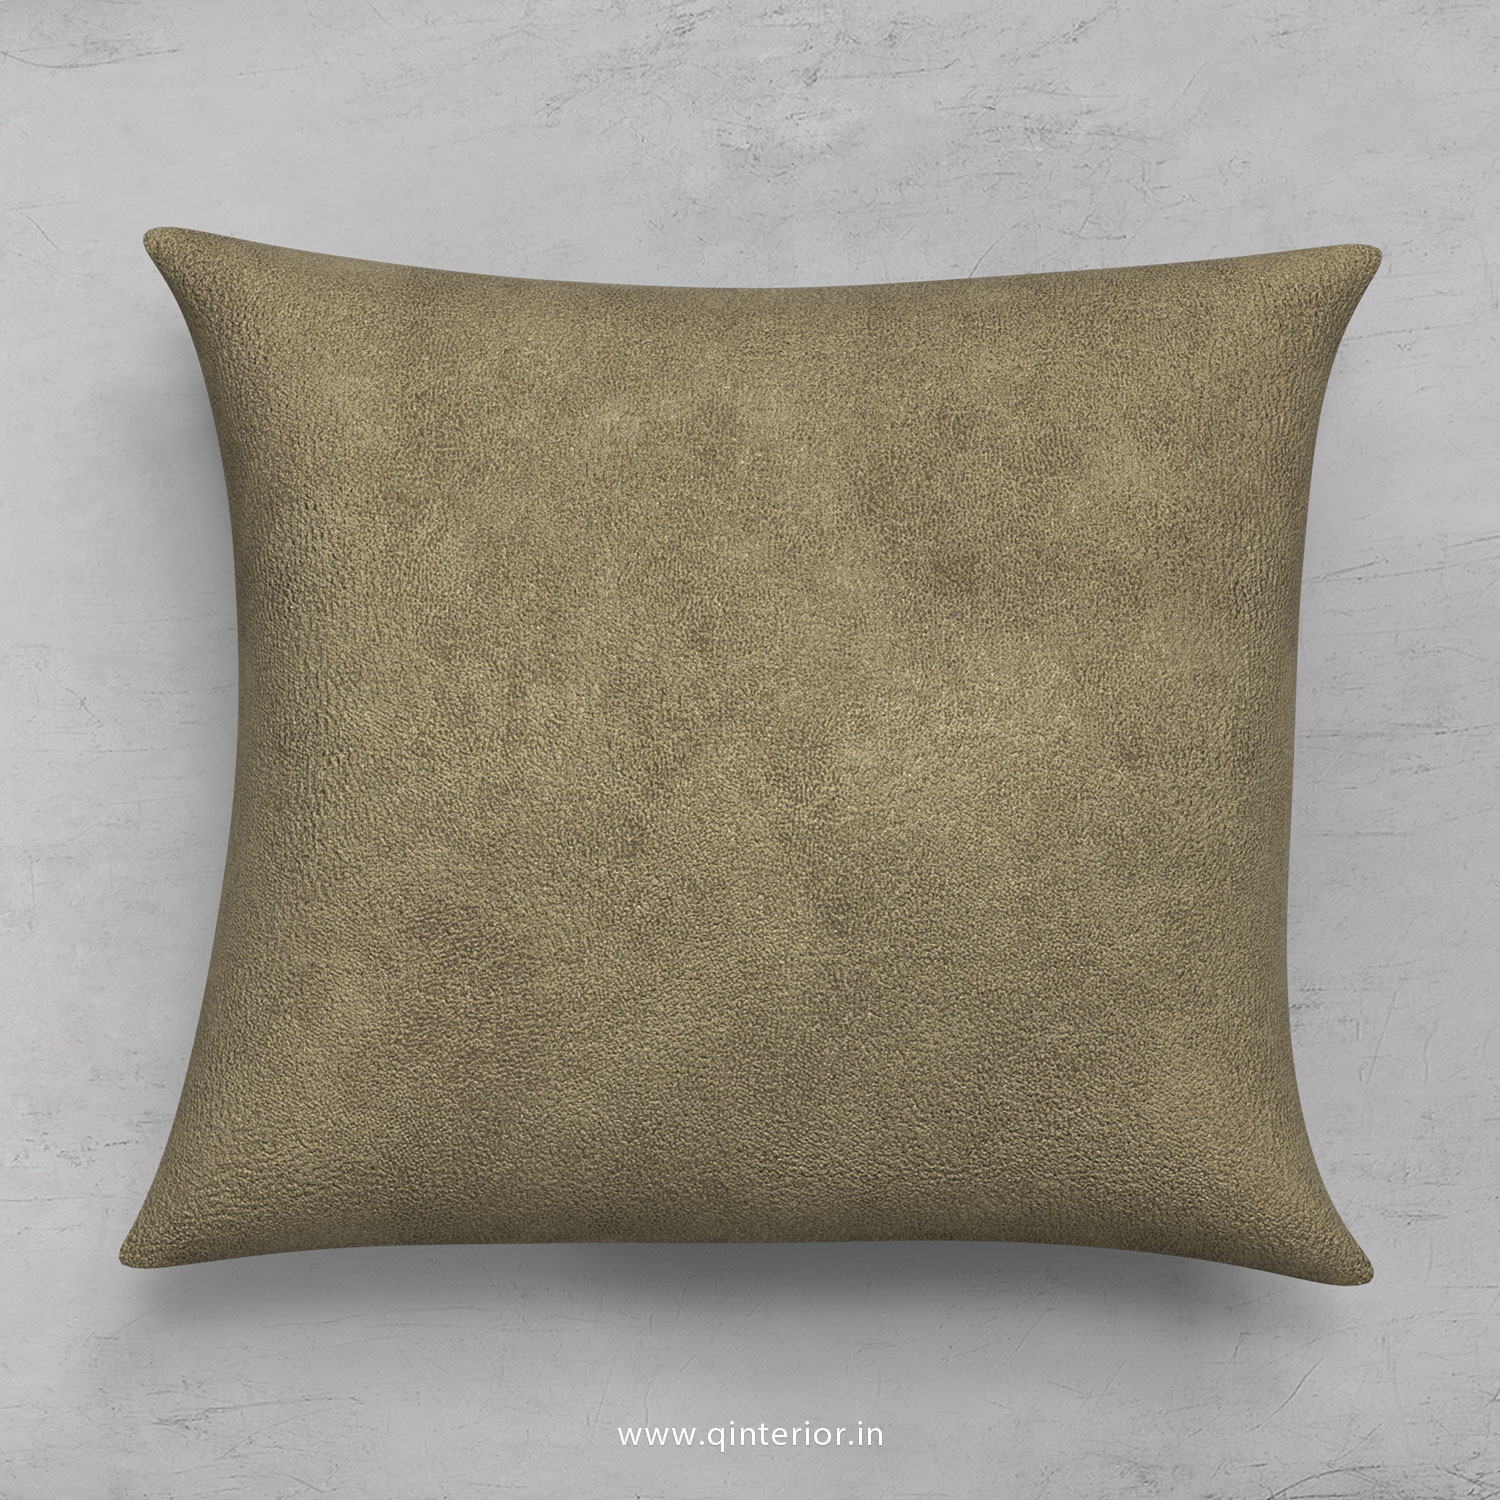 Cushion With Cushion Cover in Fab Leather- CUS001 FL03